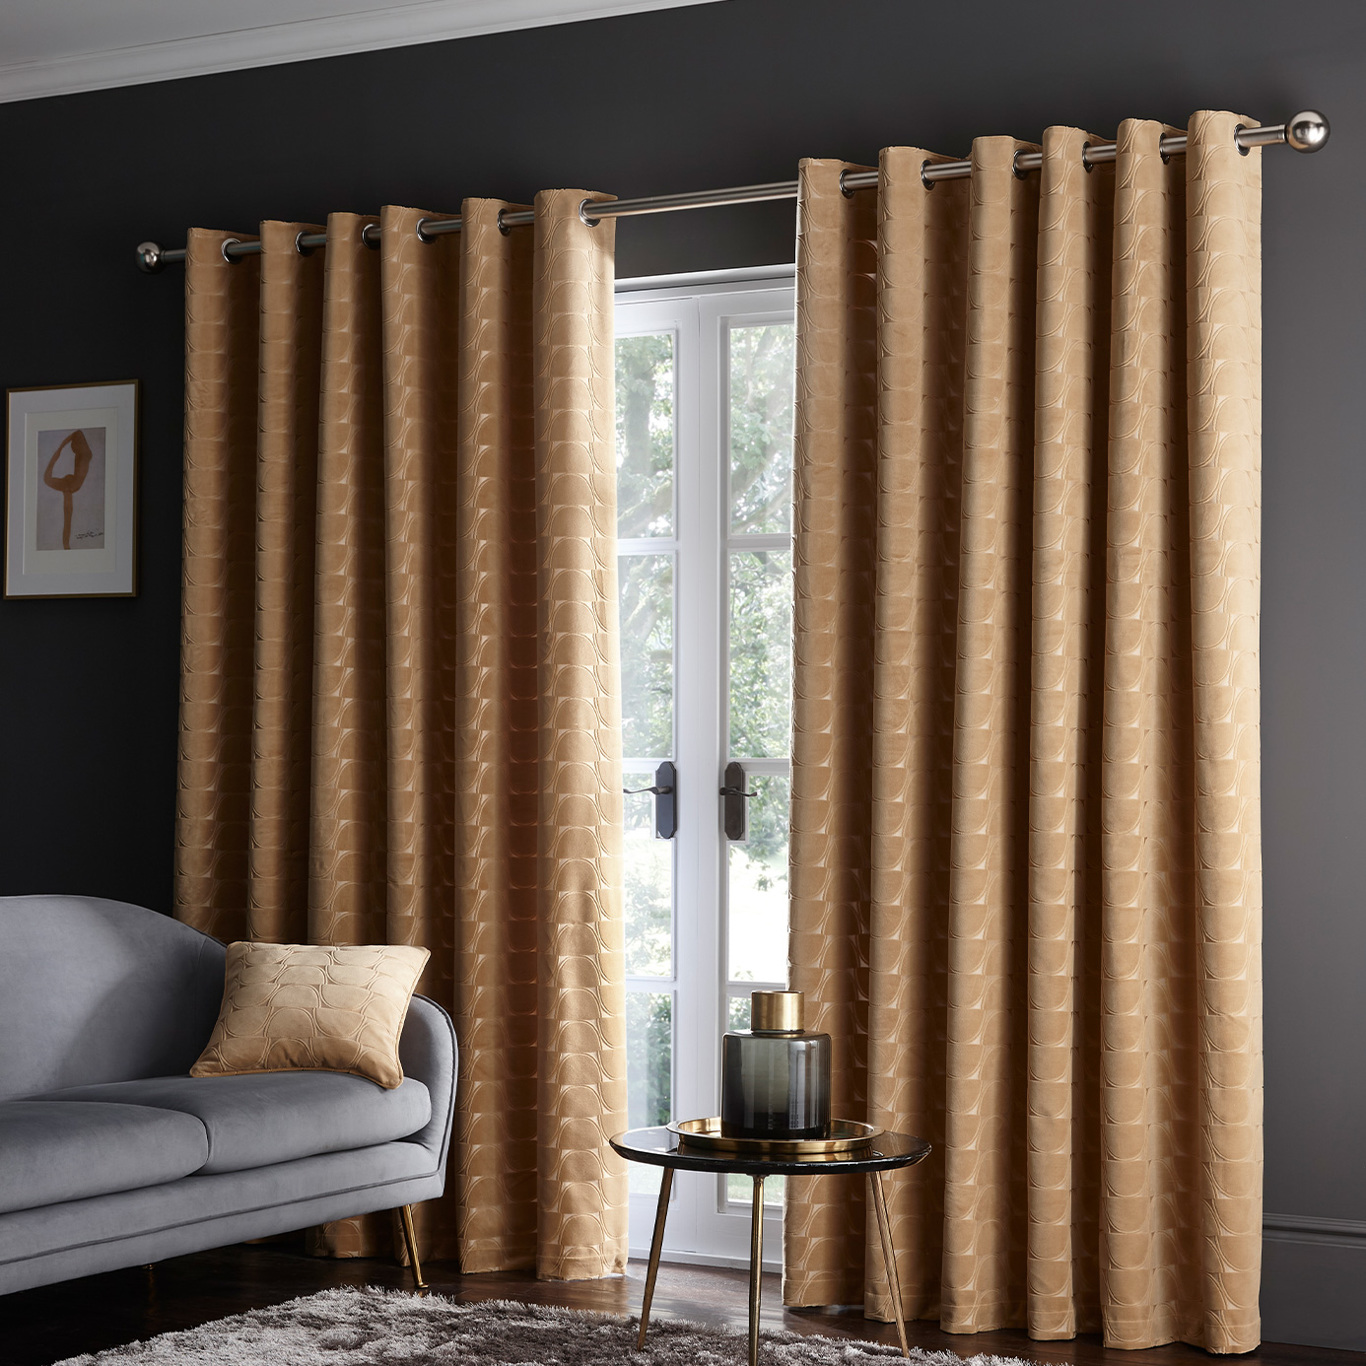 Lucca Curtain by STG